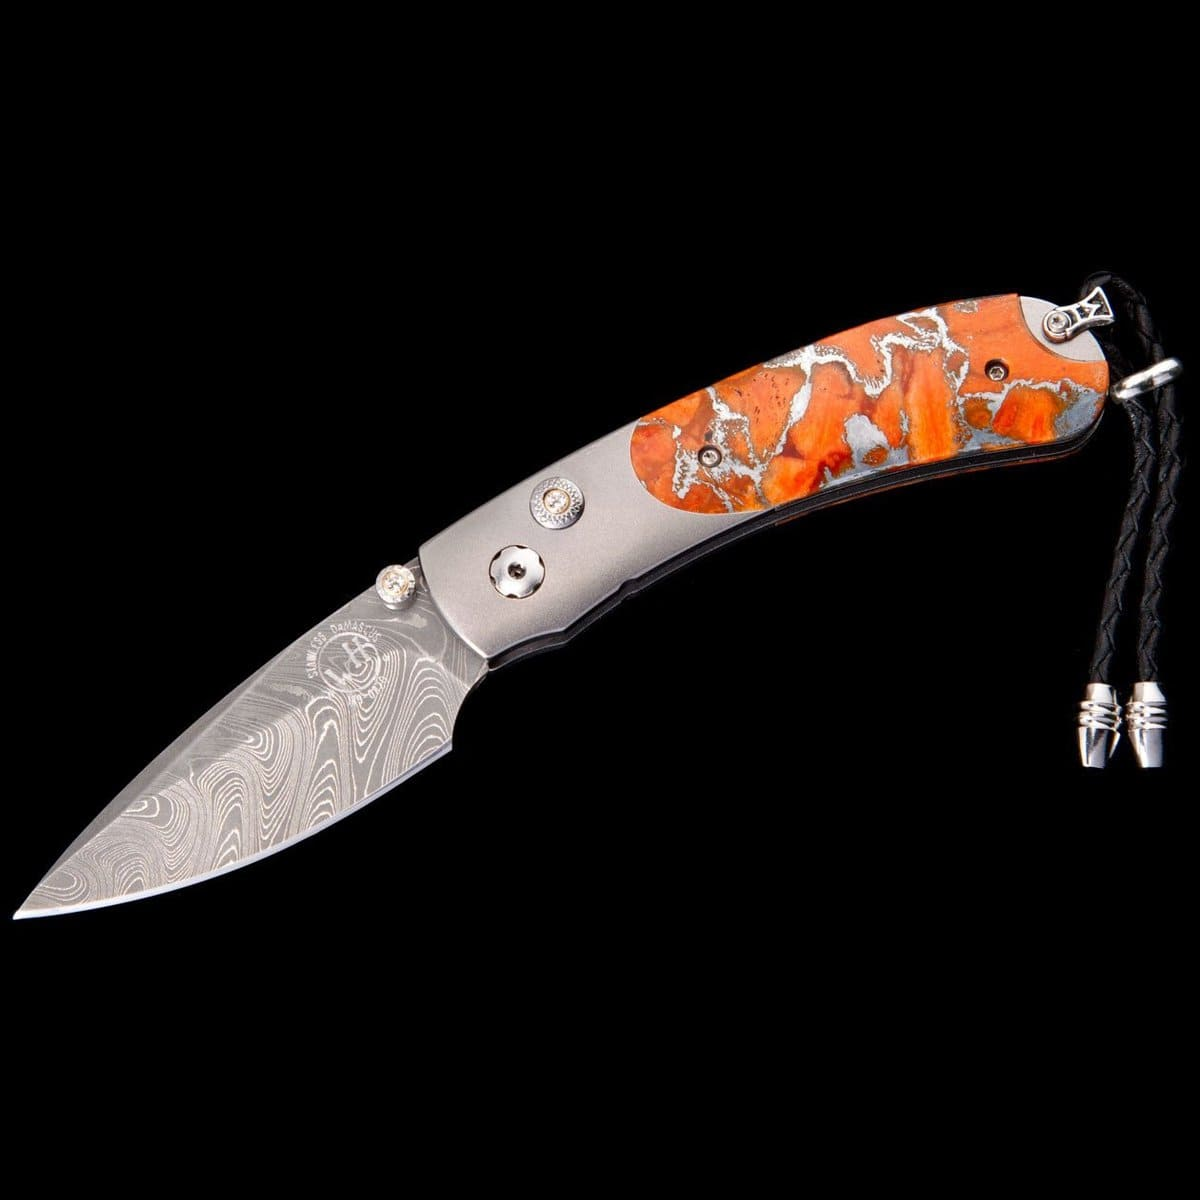 Kestrel Glow Limited Edition Knife - B09 GLOW - William Henry